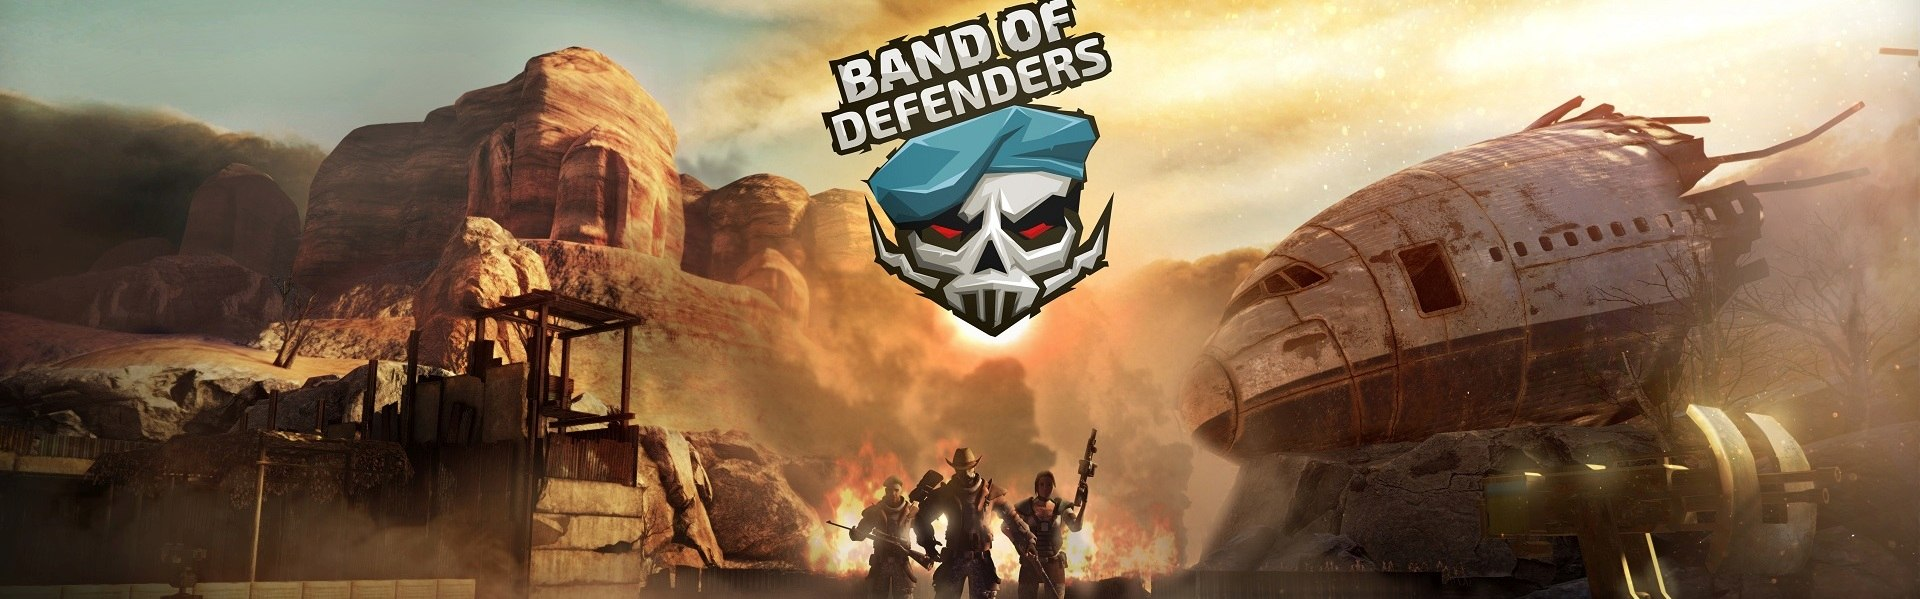 Band of Defenders Steam Key GLOBAL